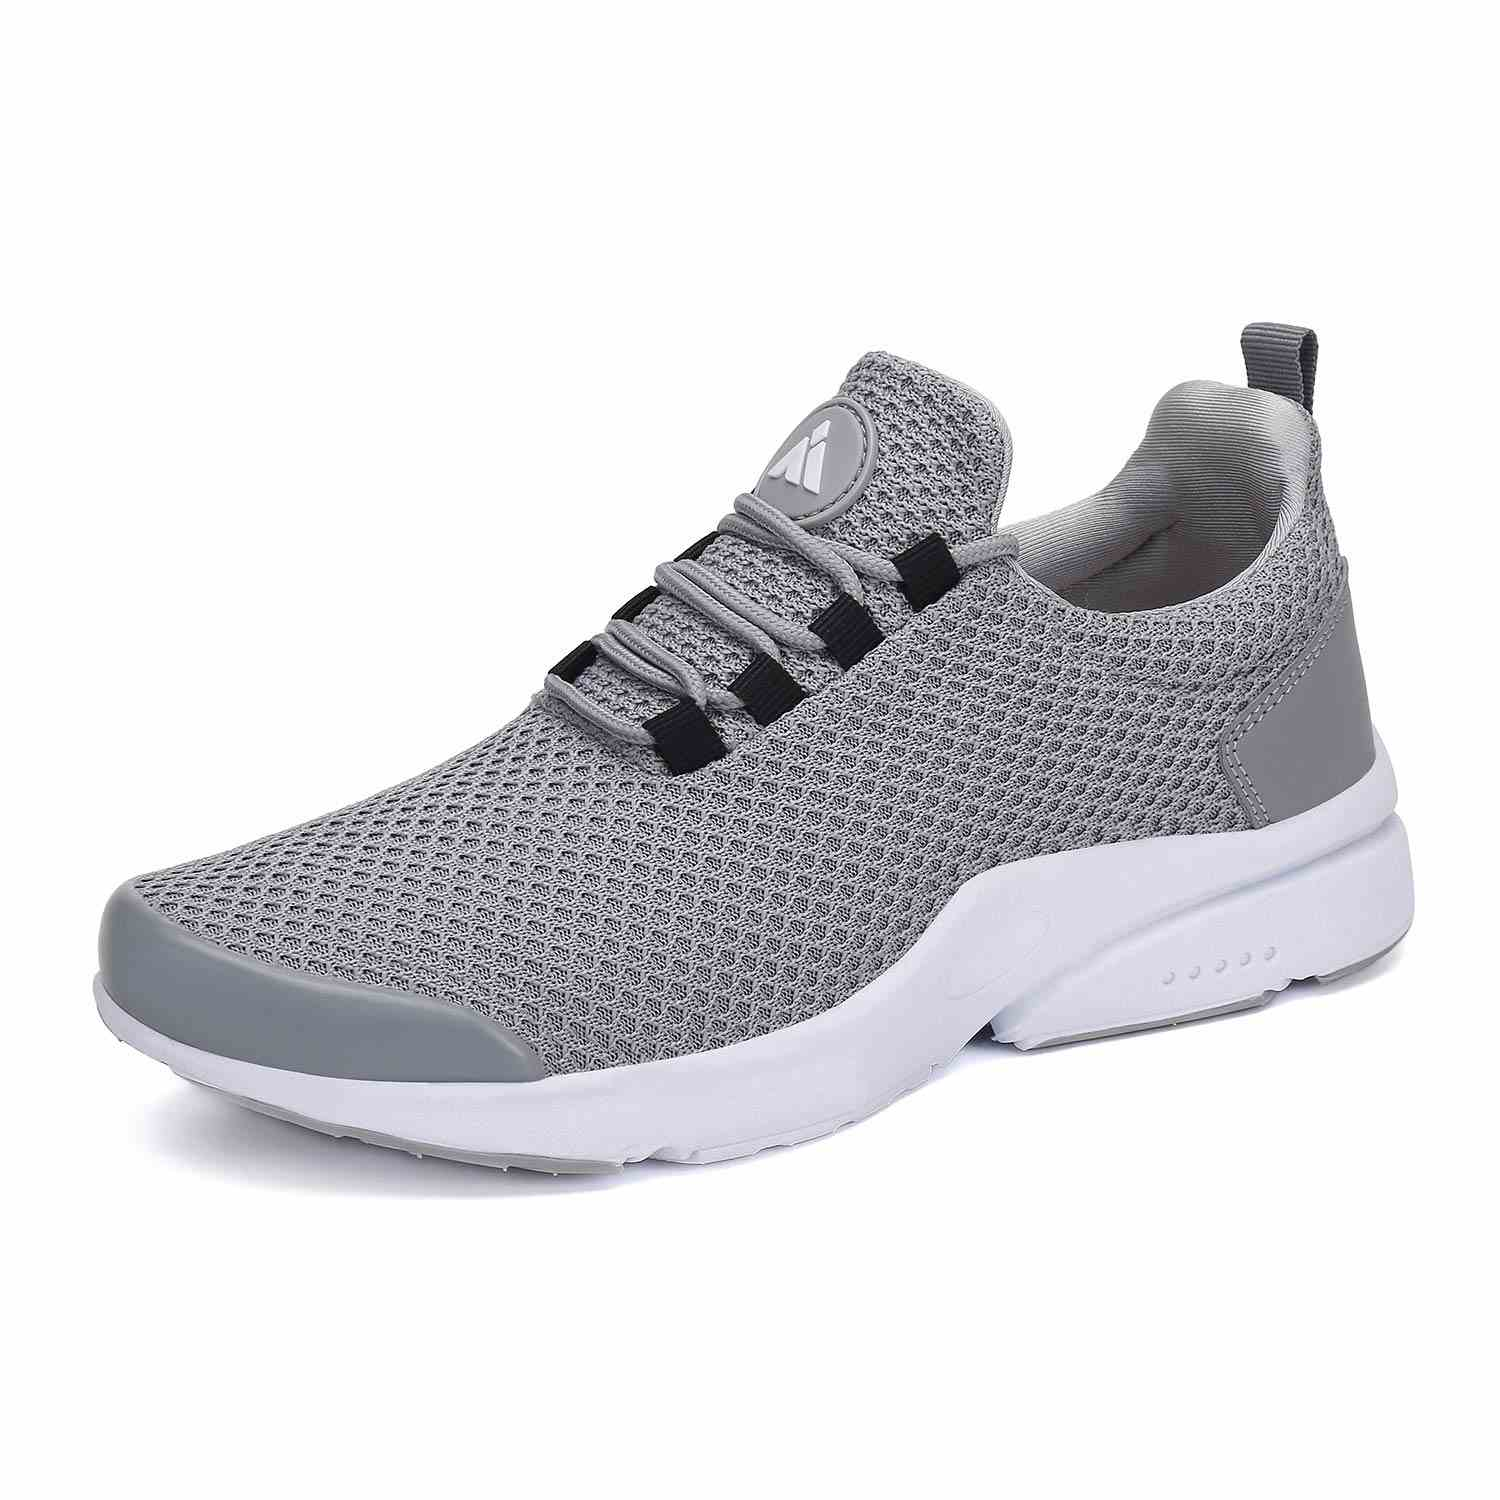 Women Fashion Sneakers Breathable Mesh Comfortable Lightweight Walking Shoes Slip-On Running Soft